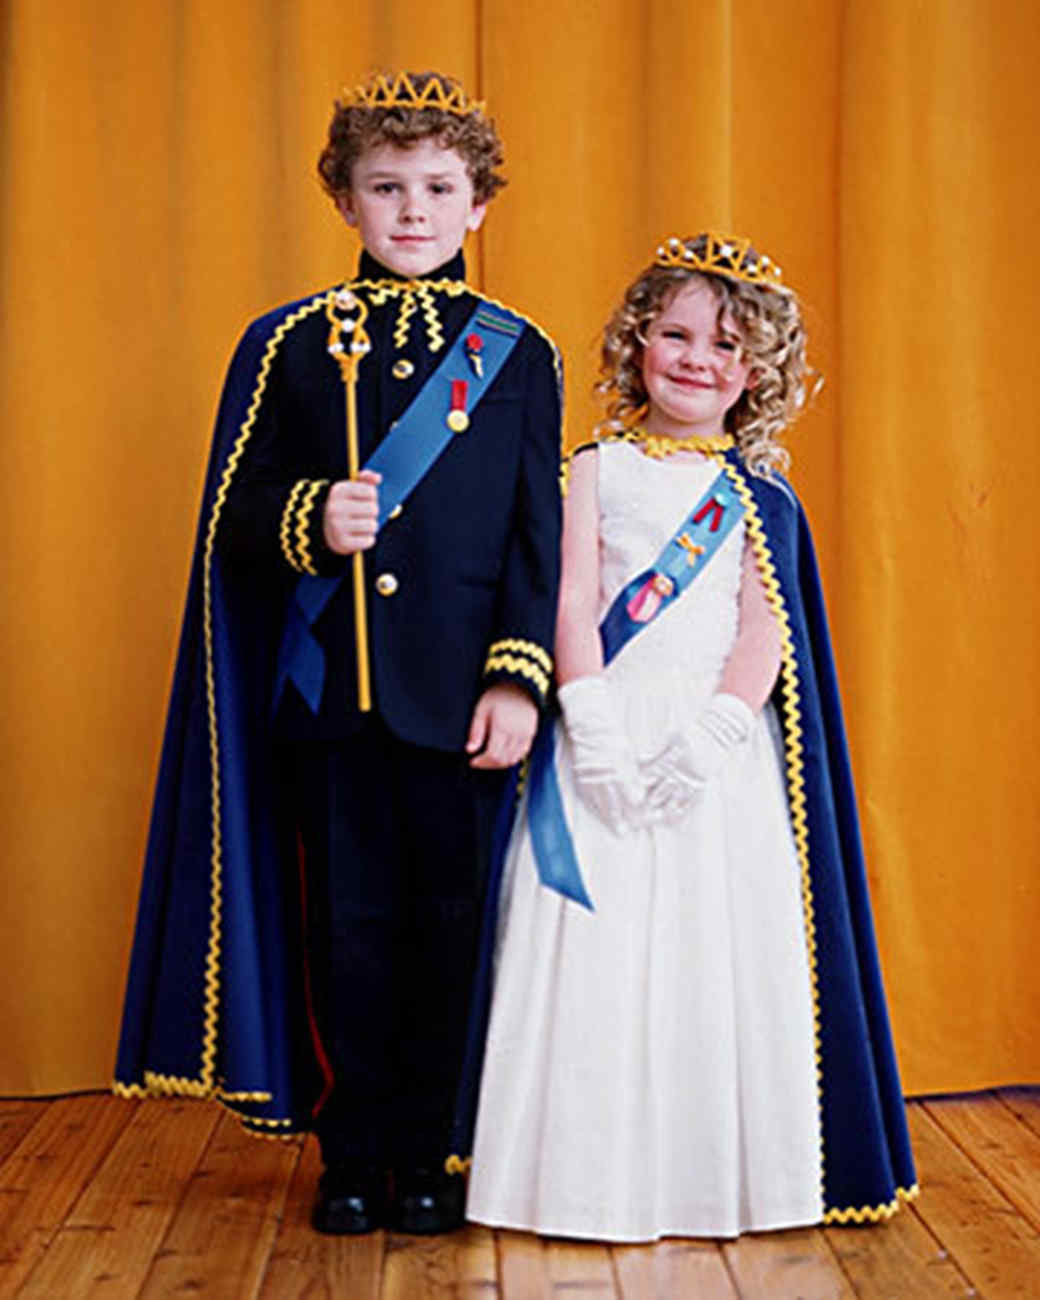 His and Her Royal Highness Costumes - 75.7KB